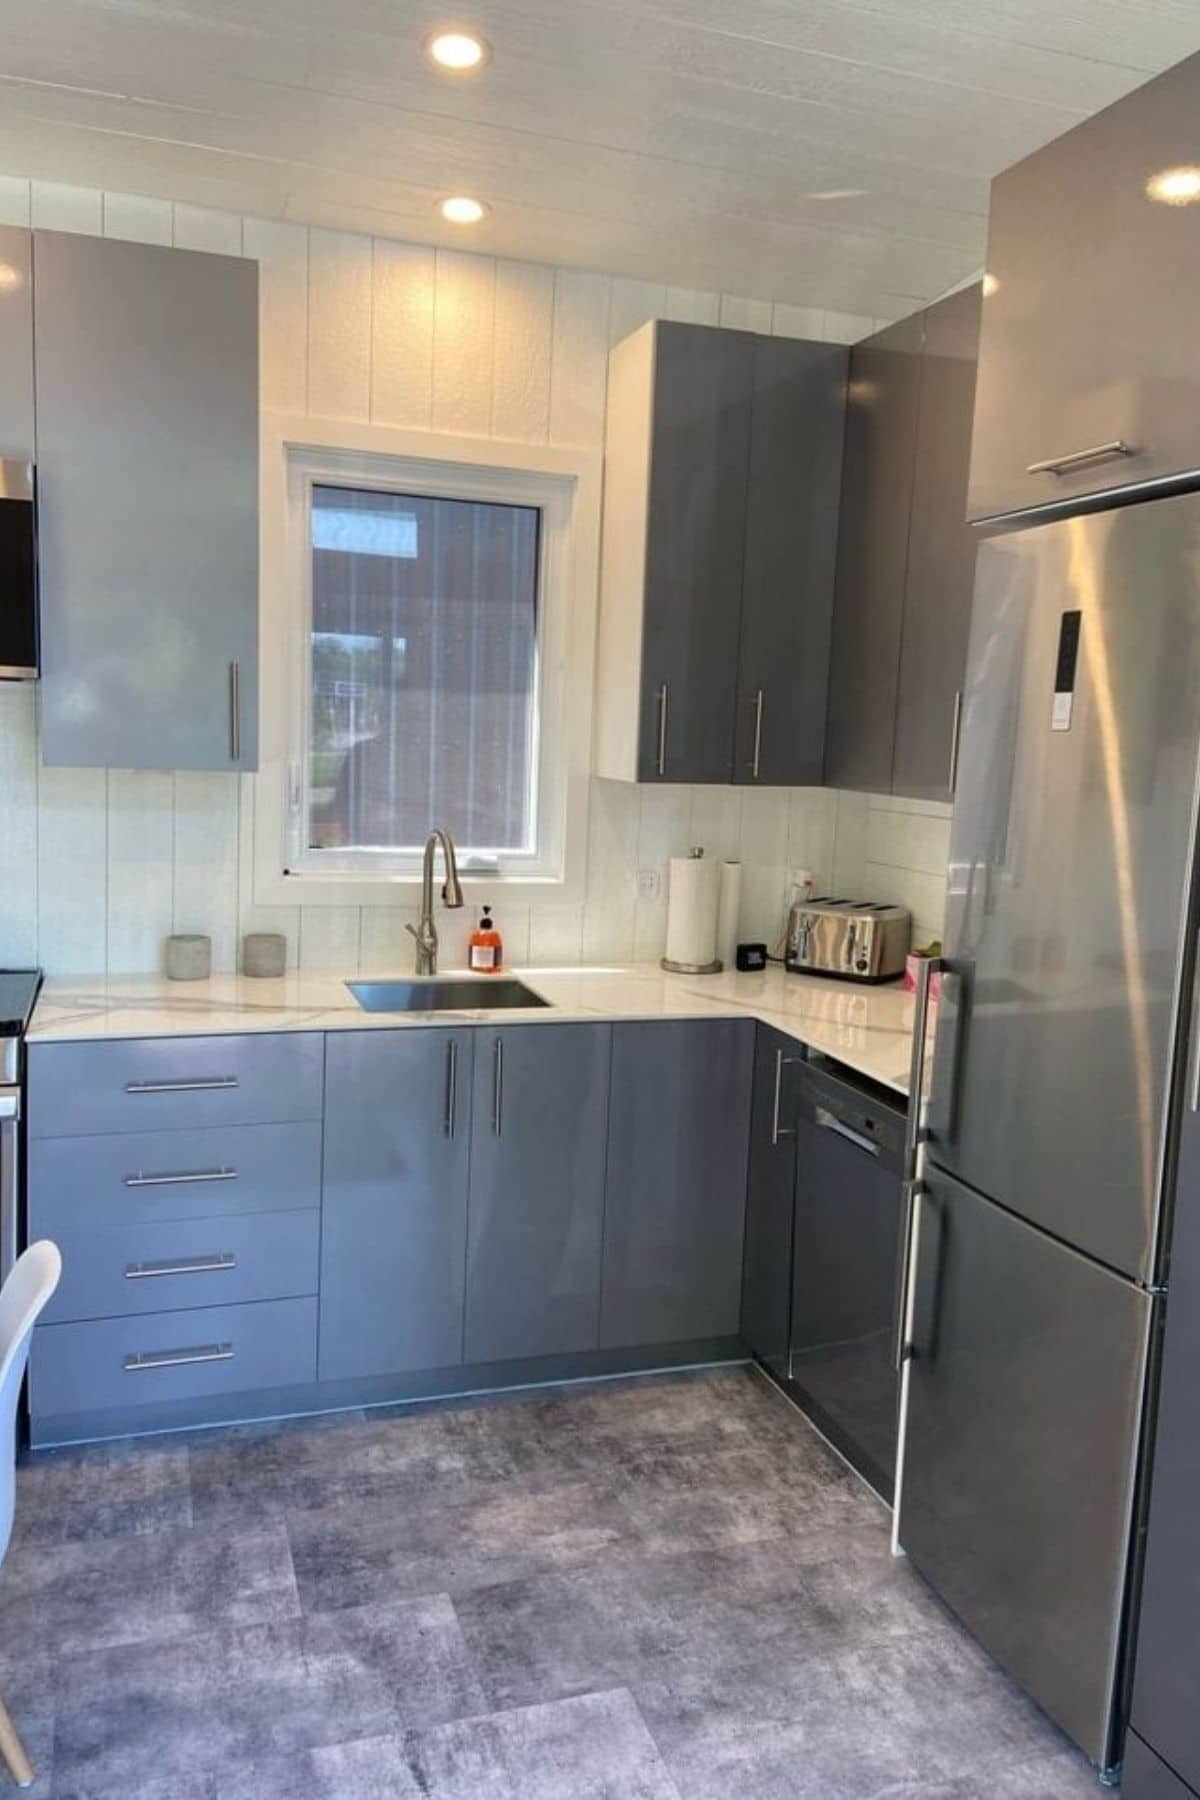 Gray cabinets and stainless steel refrigerator intiny kitchen